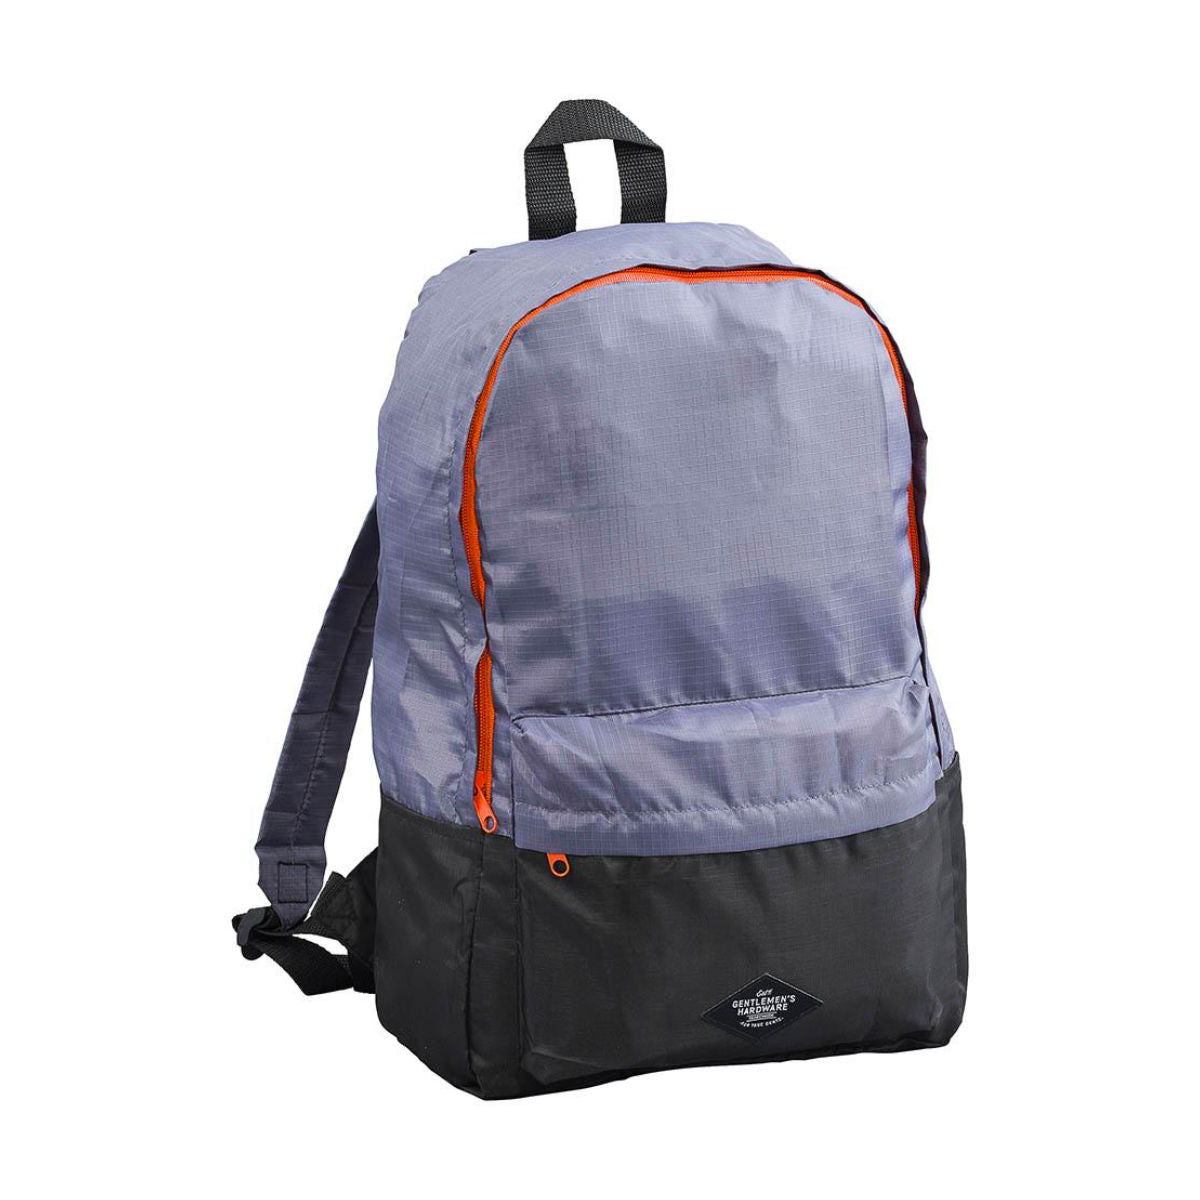 Gentlemen's Hardware fold away back pack